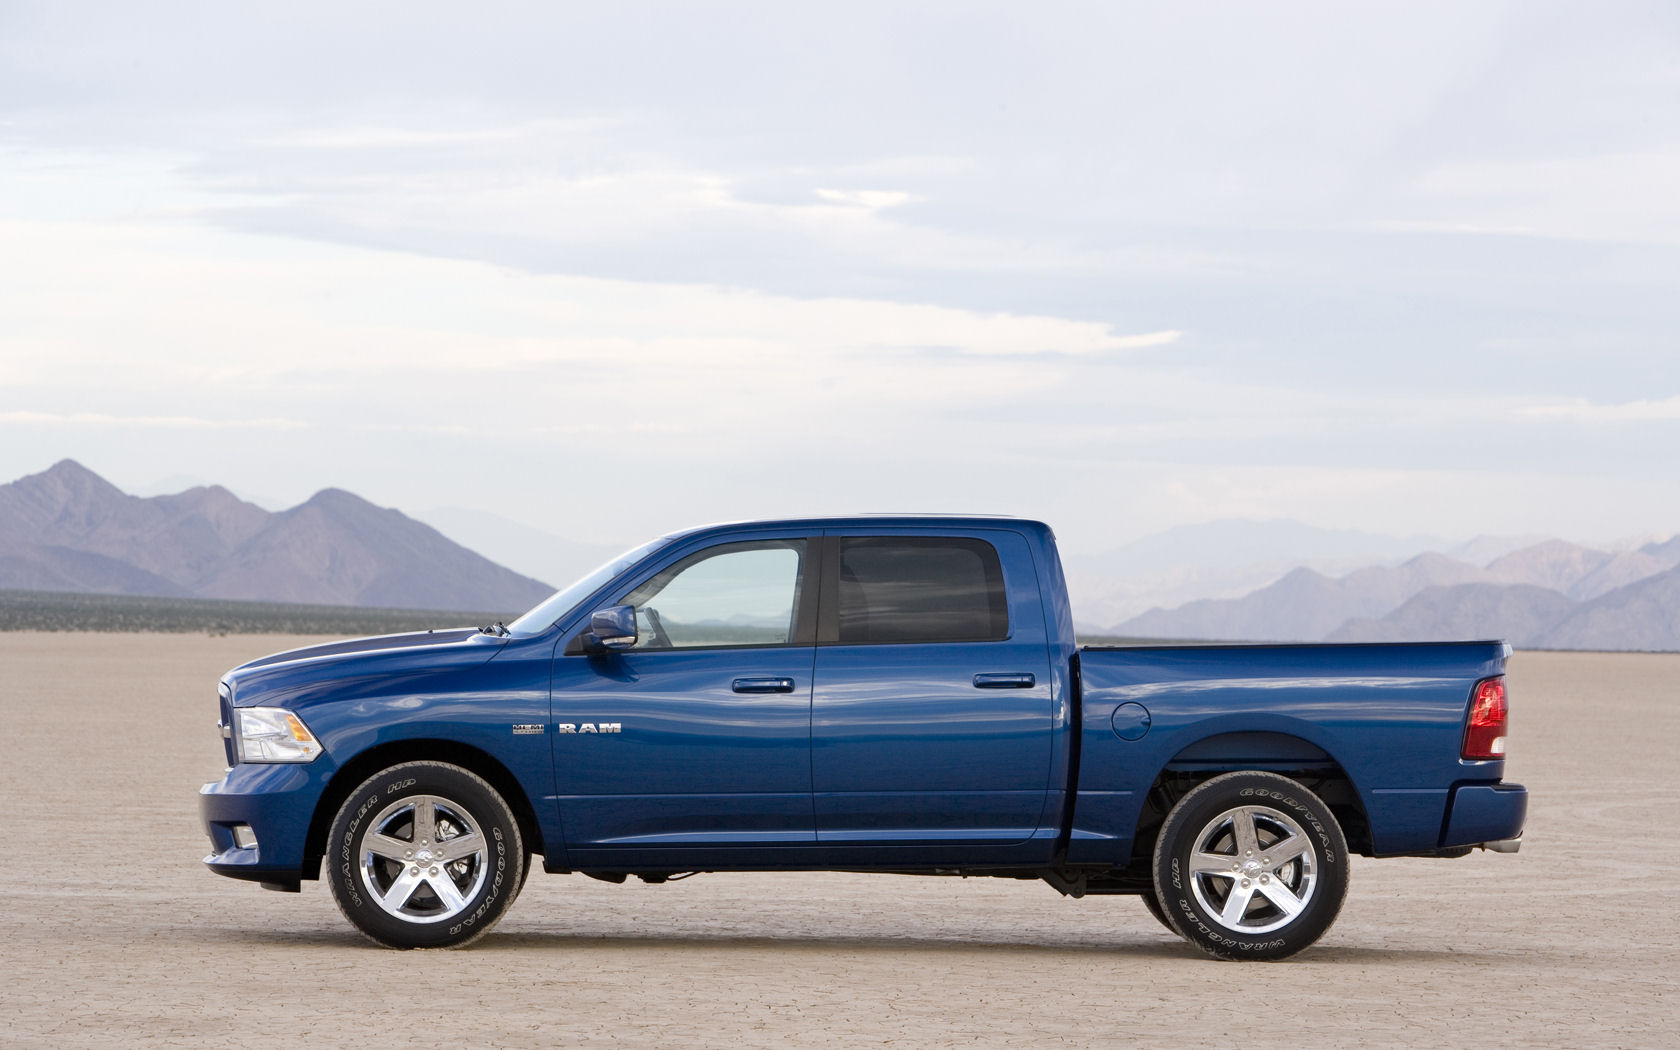 Dodge Ram 1500 Wallpaper 4212 Hd Wallpapers in Cars   Imagescicom 1680x1050